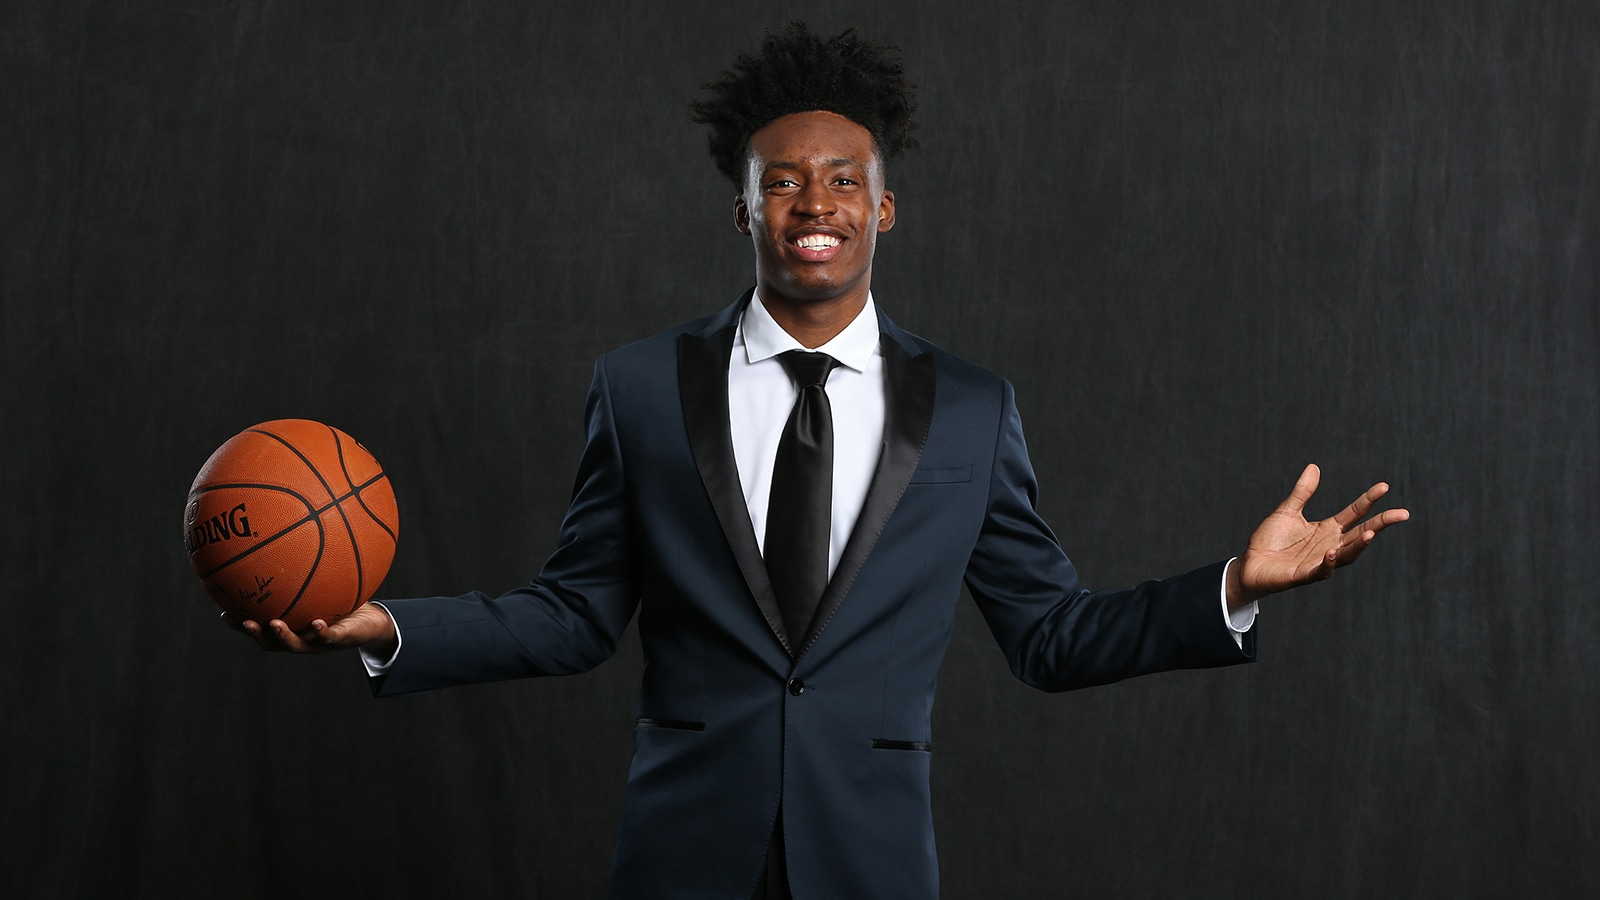 Collin Sexton at the 2018 Draft Combine